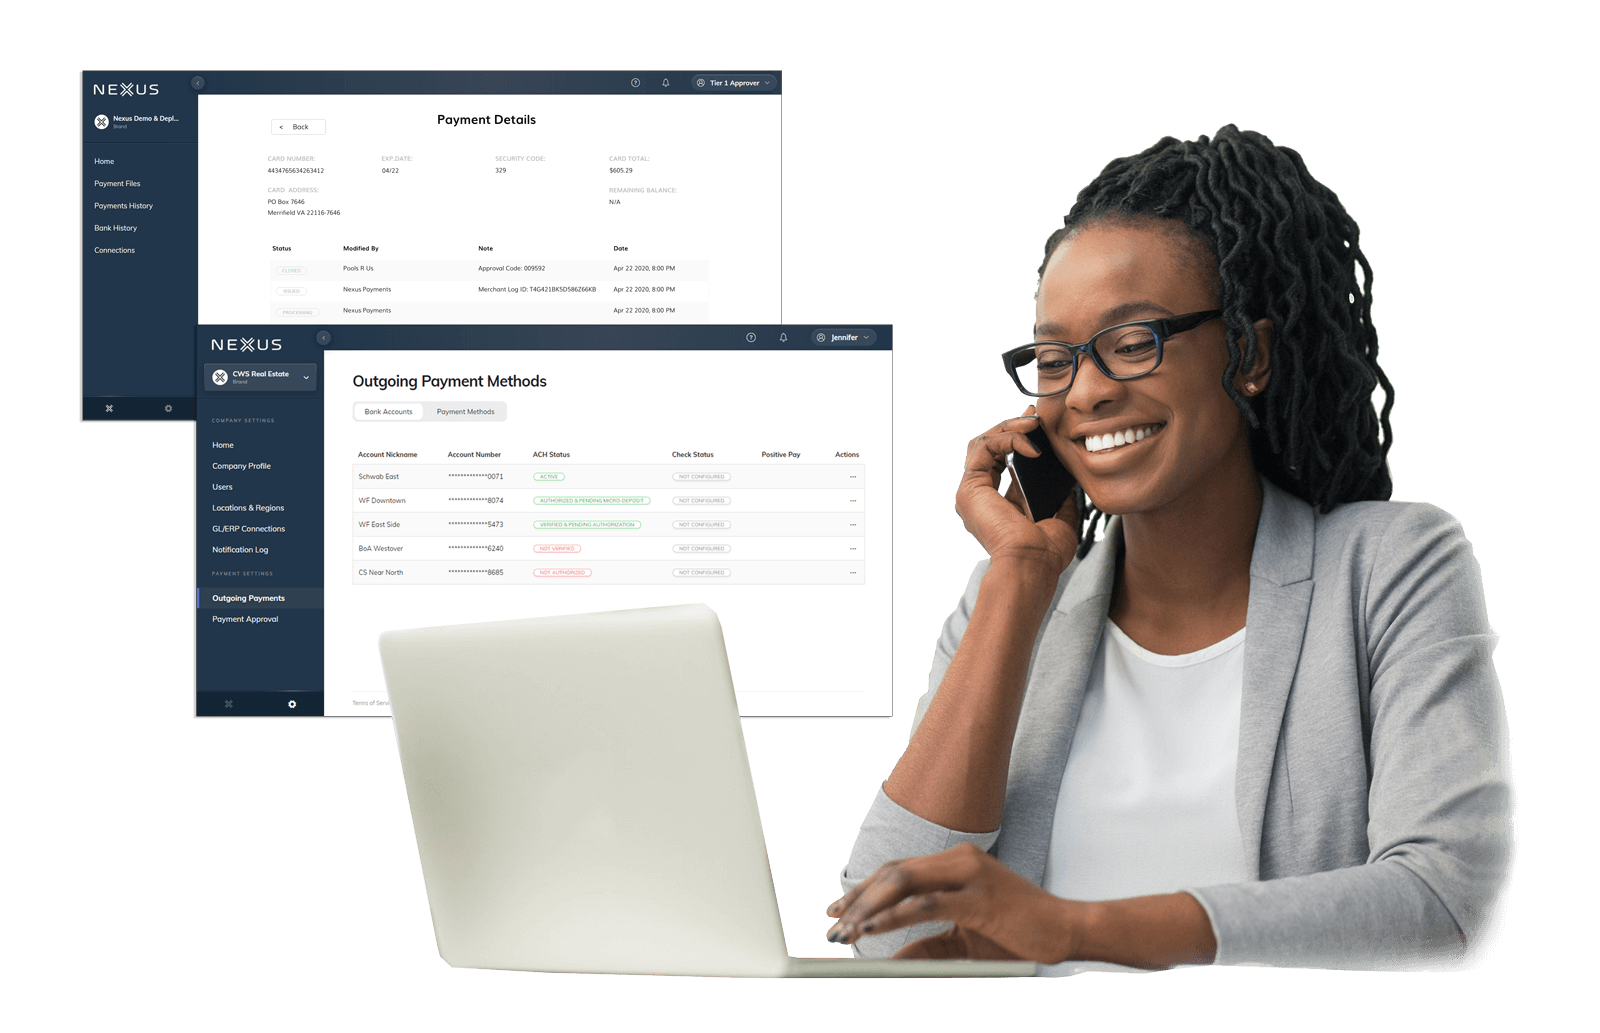 When you use Nexus Vendor Payments, just log in to NexusConnect to track all your transactions.